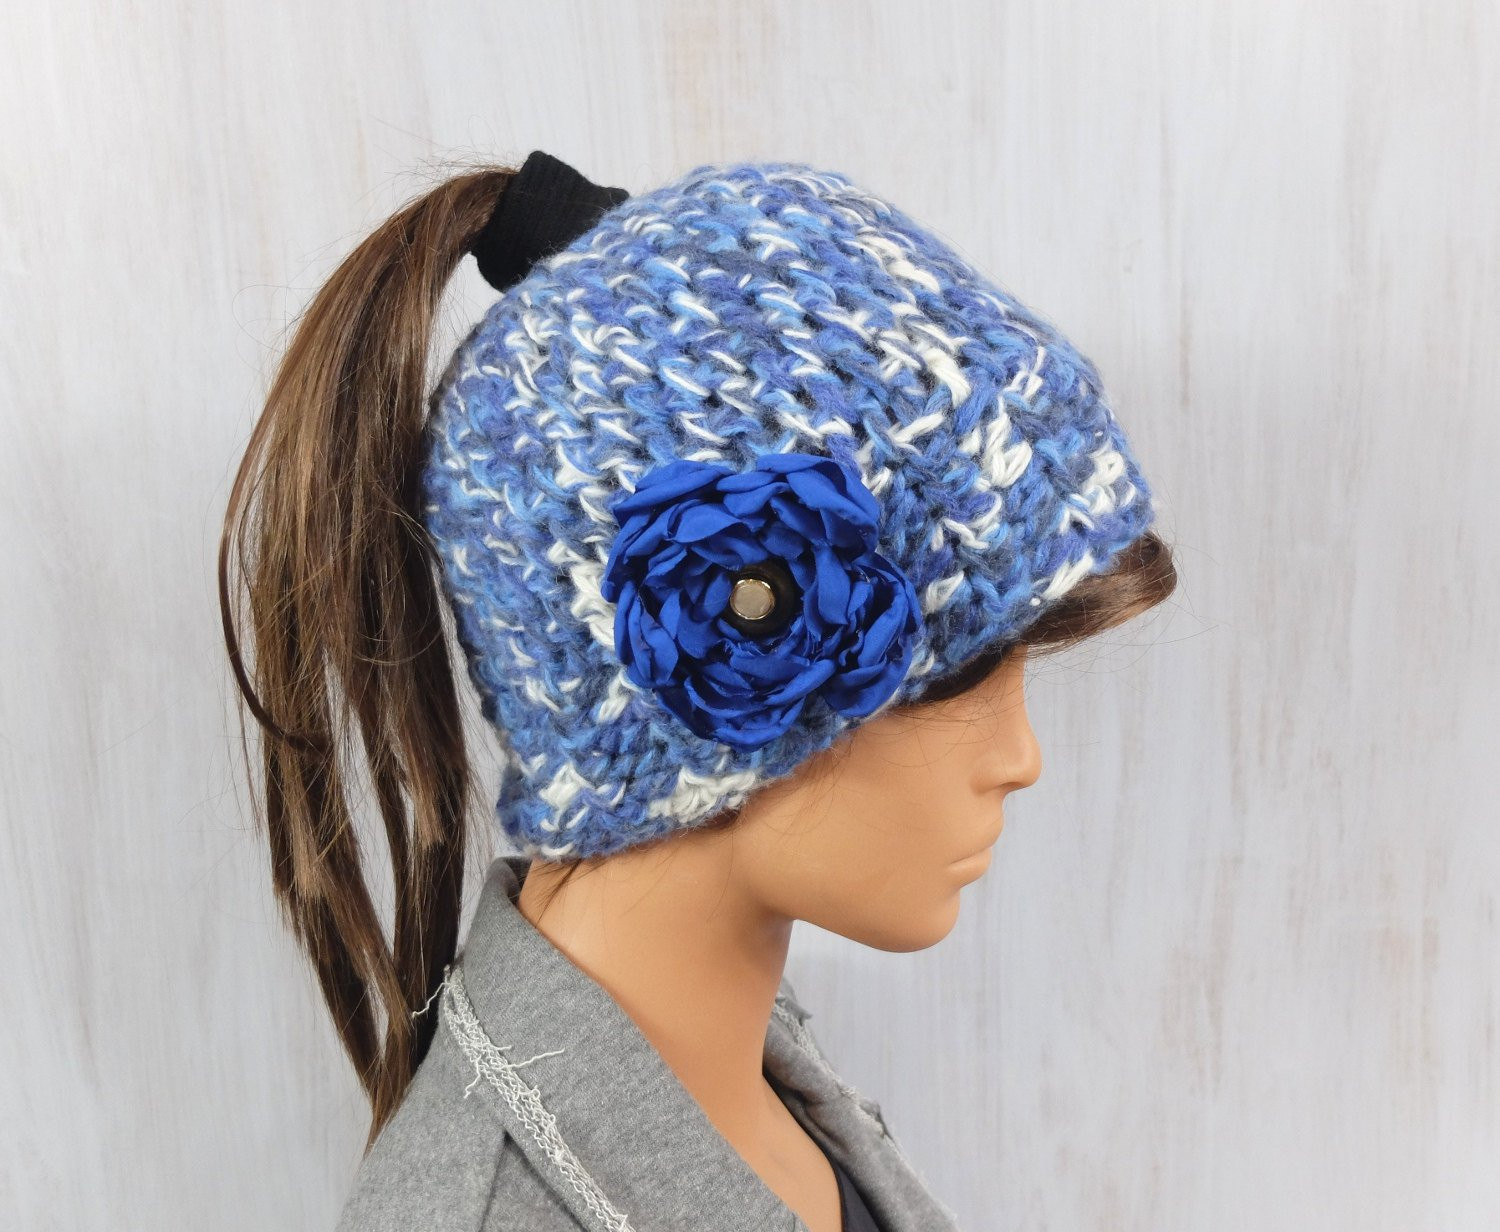 Messy Bun Beanie Hat Luxury Messy Bun Beanie Running Hat Crochet Beanie Pony Tail Beanie Of Brilliant 47 Photos Messy Bun Beanie Hat